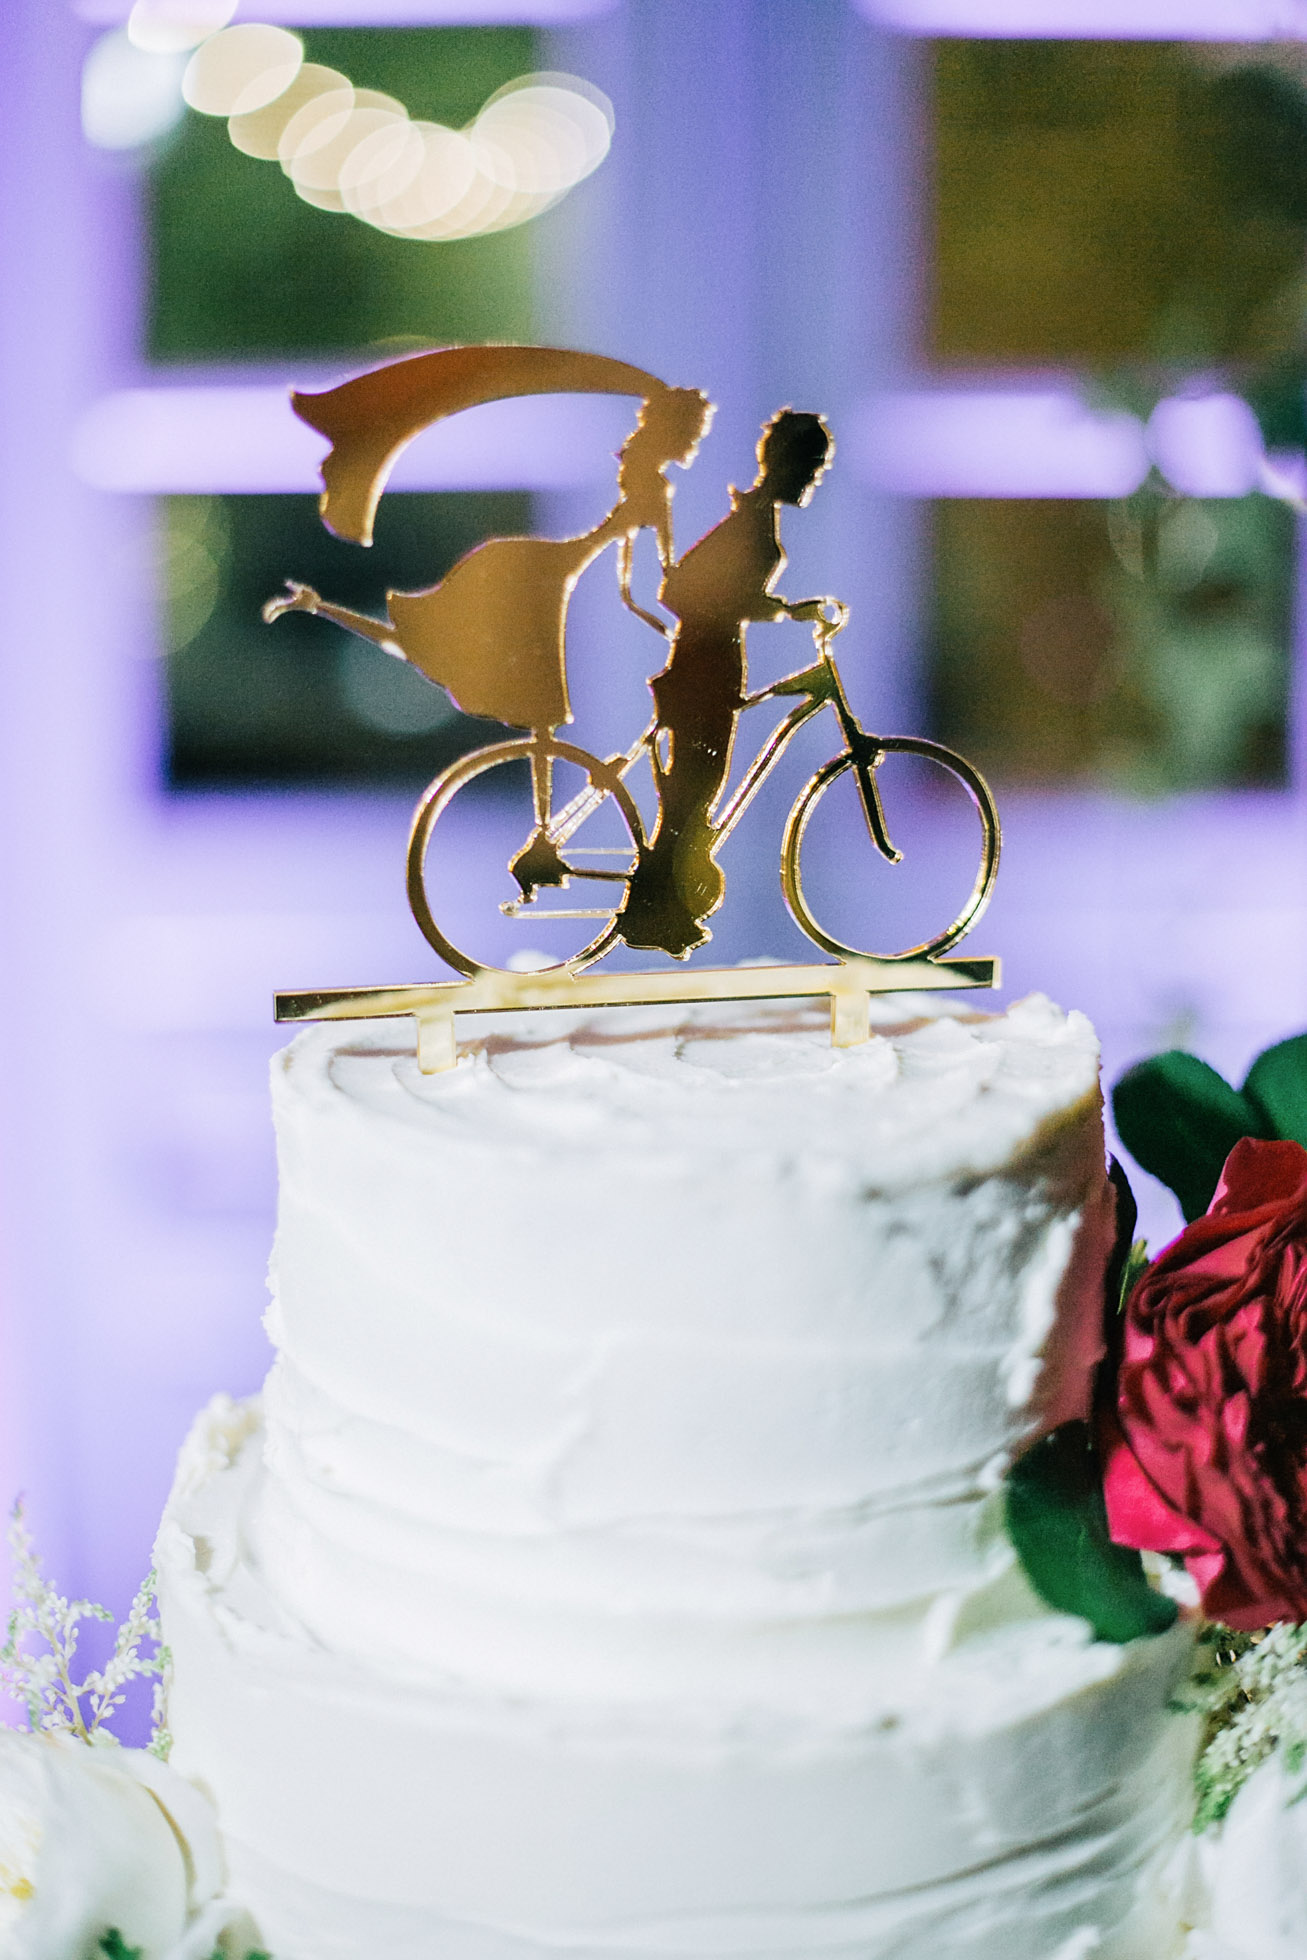 Signature wedding cake for a destination wedding in Crete.